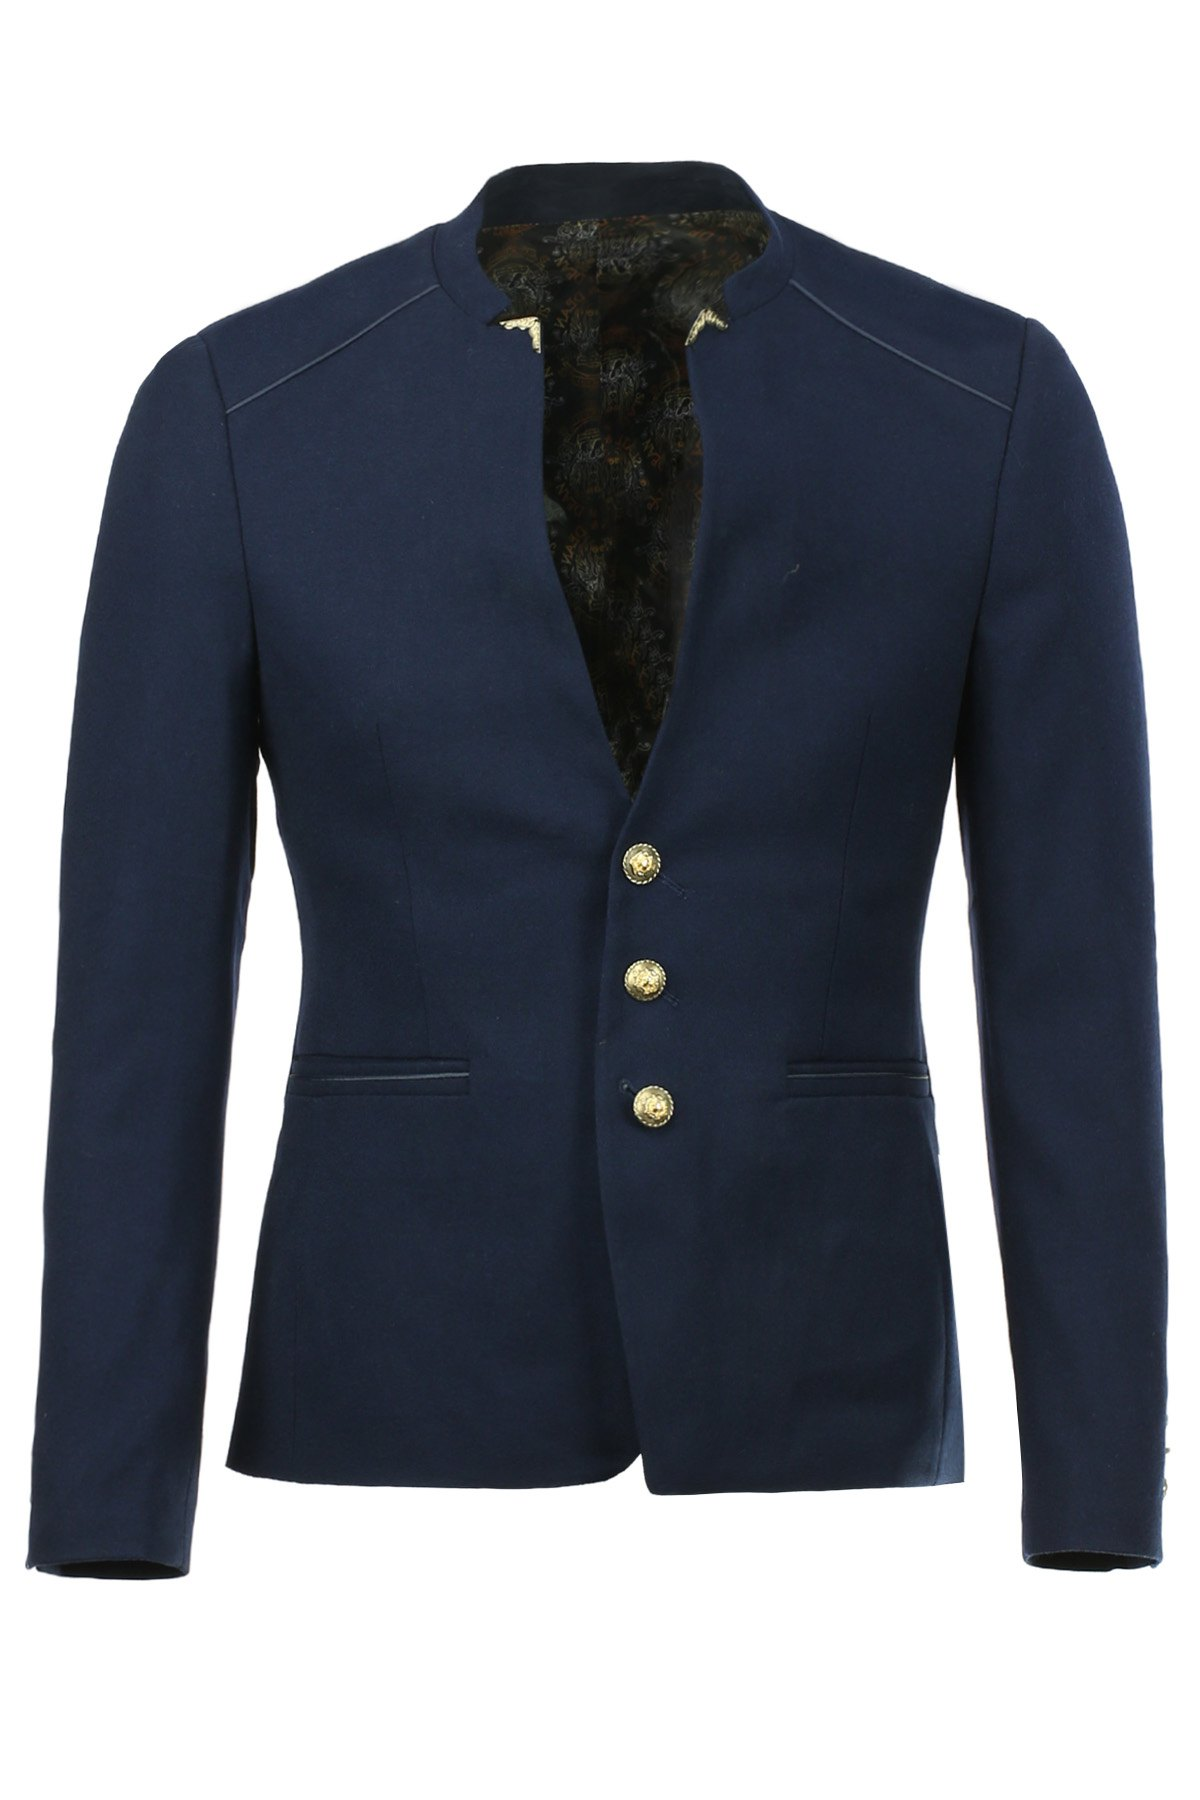 Trendy Stand Collar Button Design Cuffs Long Sleeve Men's Single-Breasted Blazer